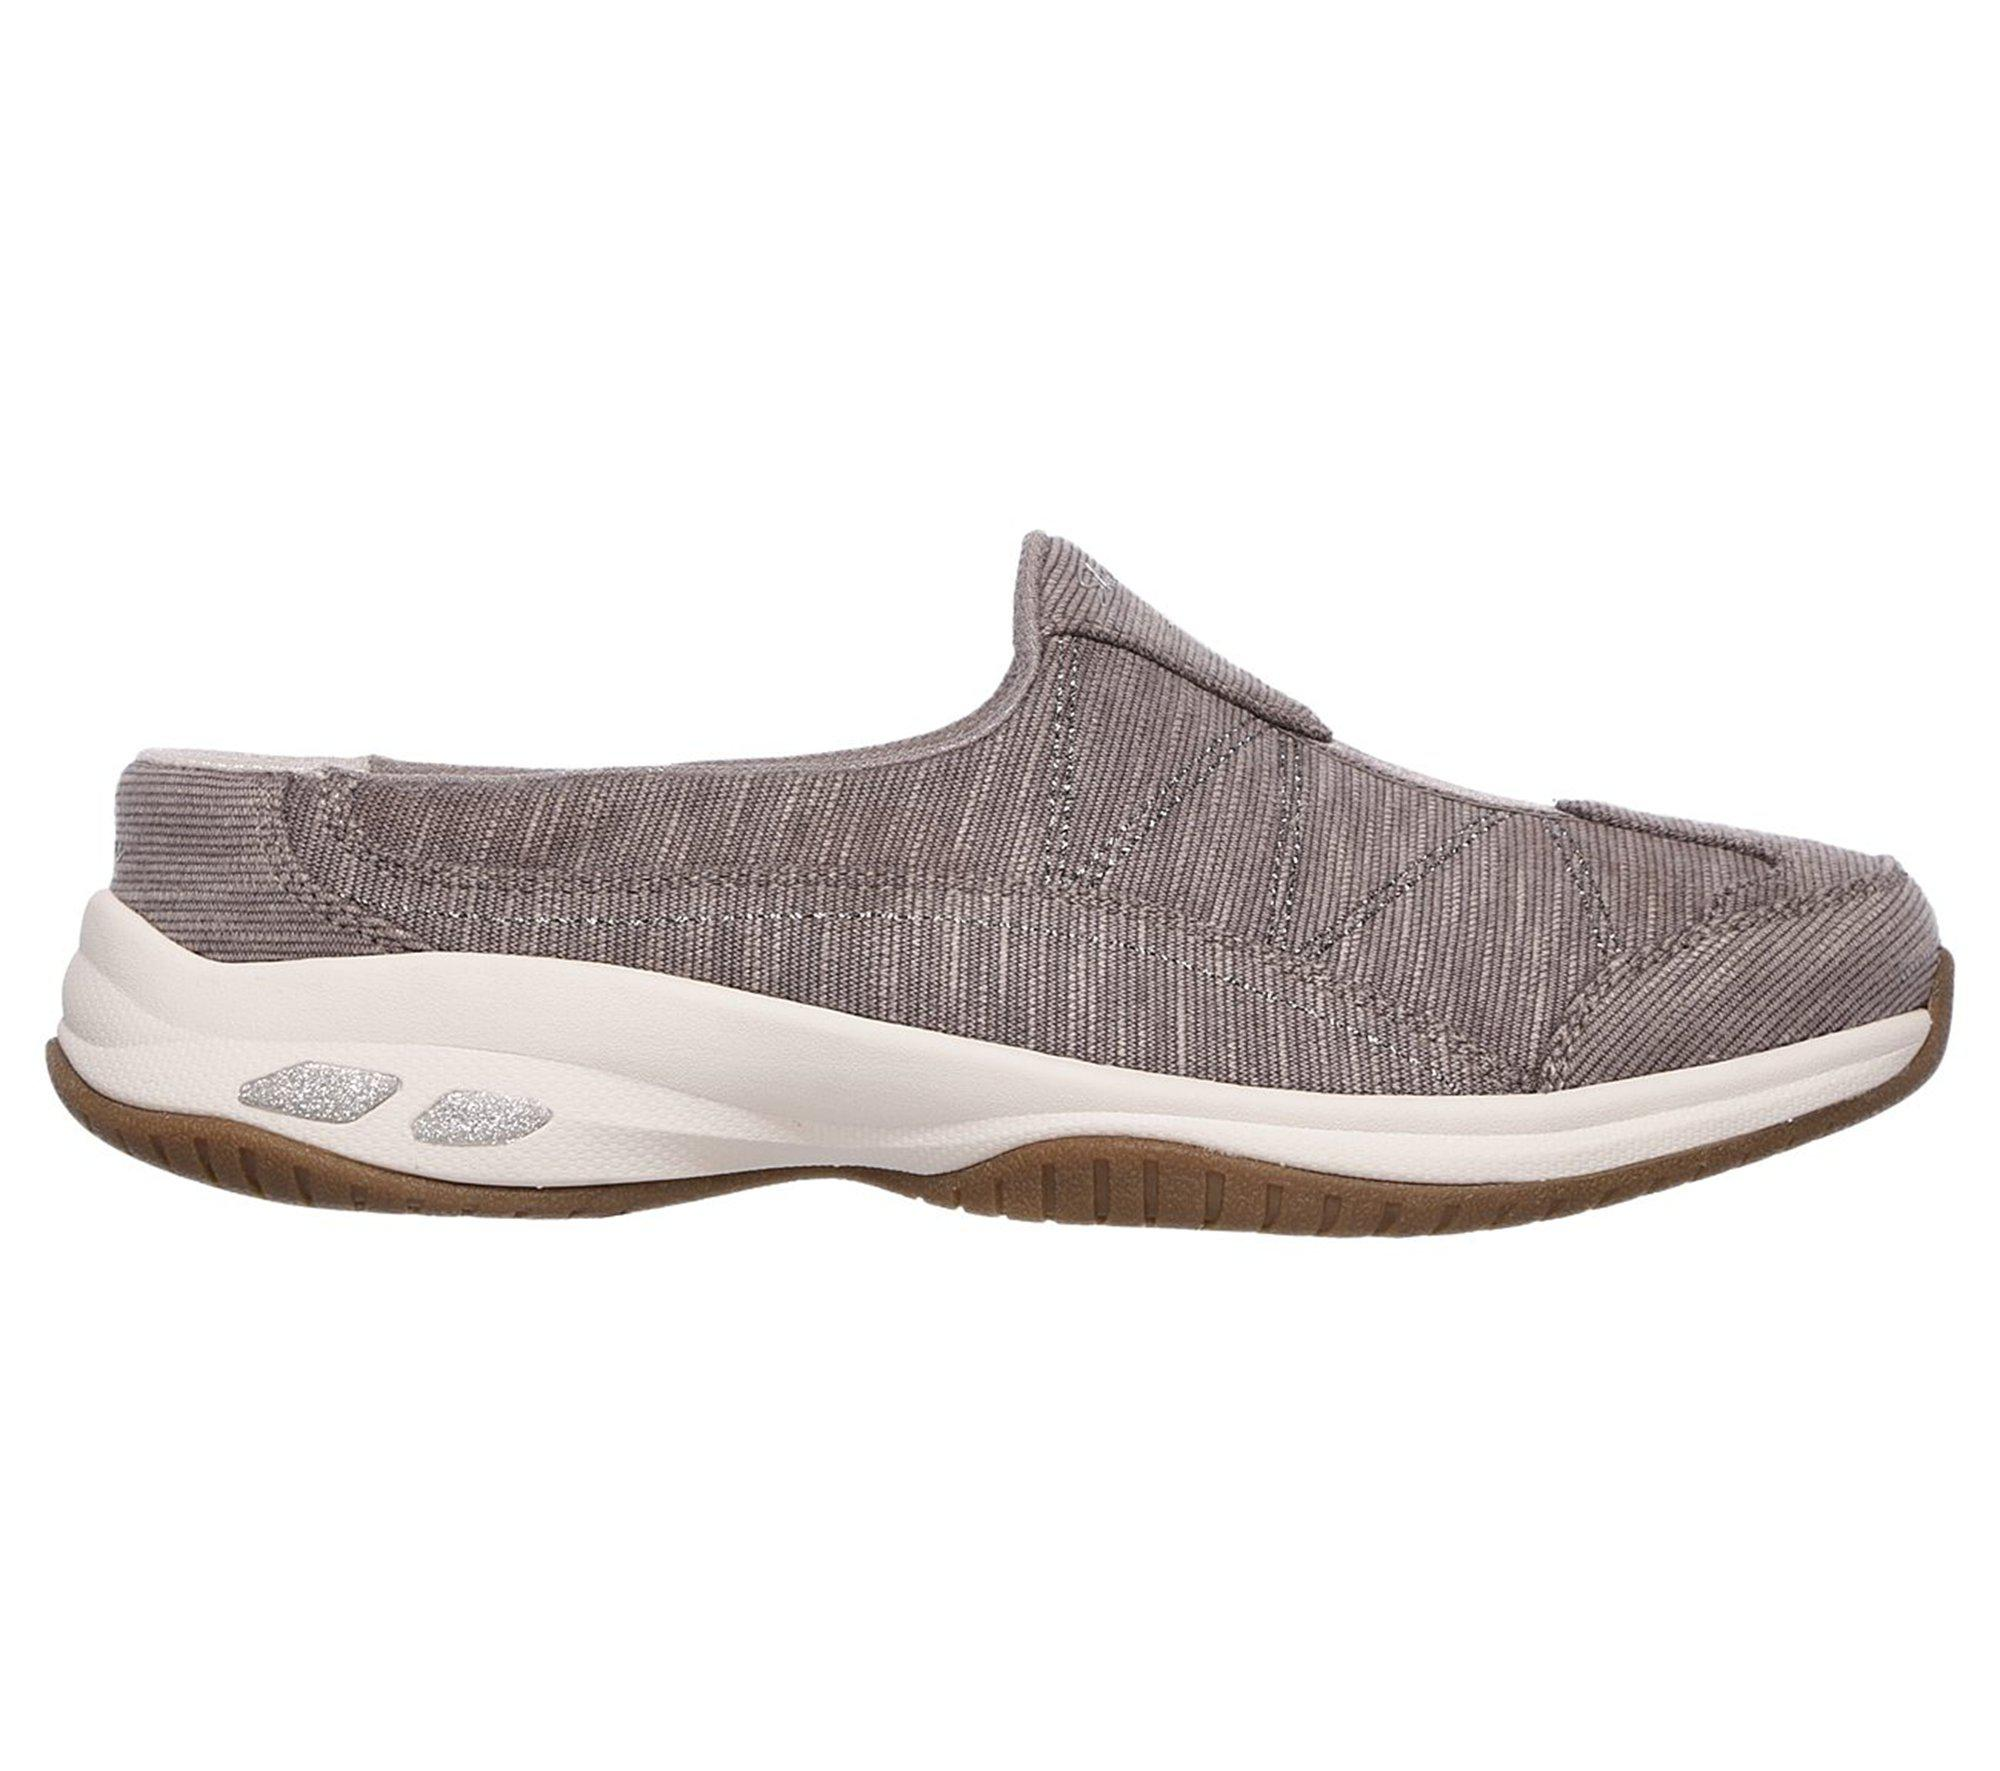 41b9538ca82f Lyst - Skechers Relaxed Fit  Commute Time - Carpool in Gray